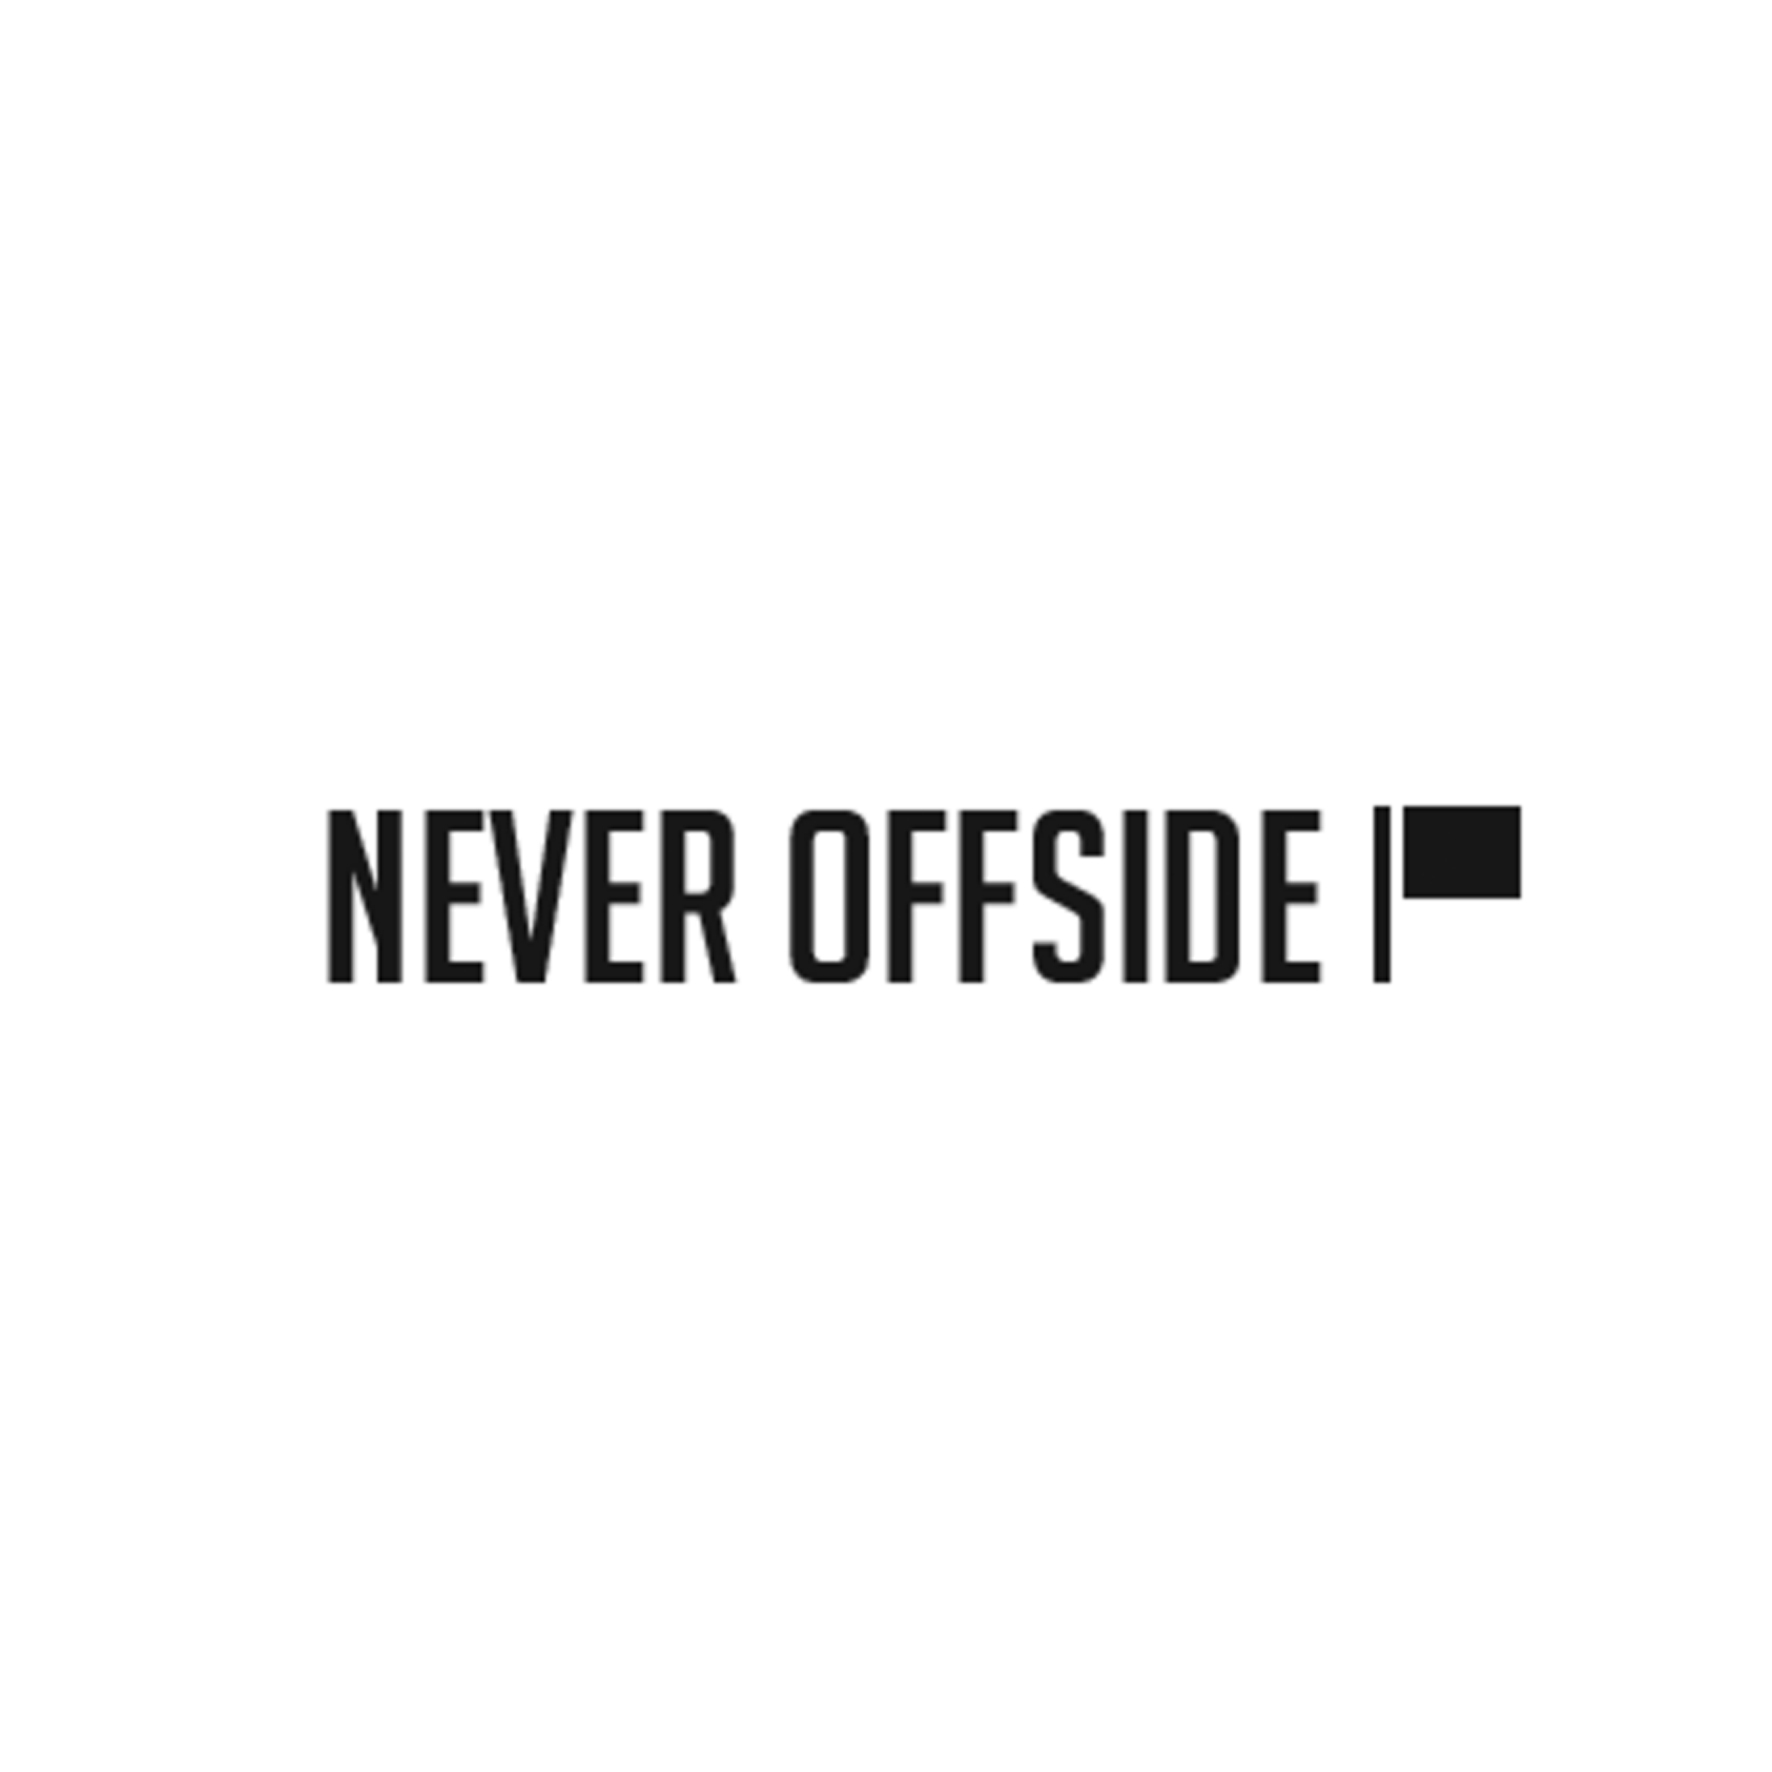 Never Offside   My first feature on Never Offside.